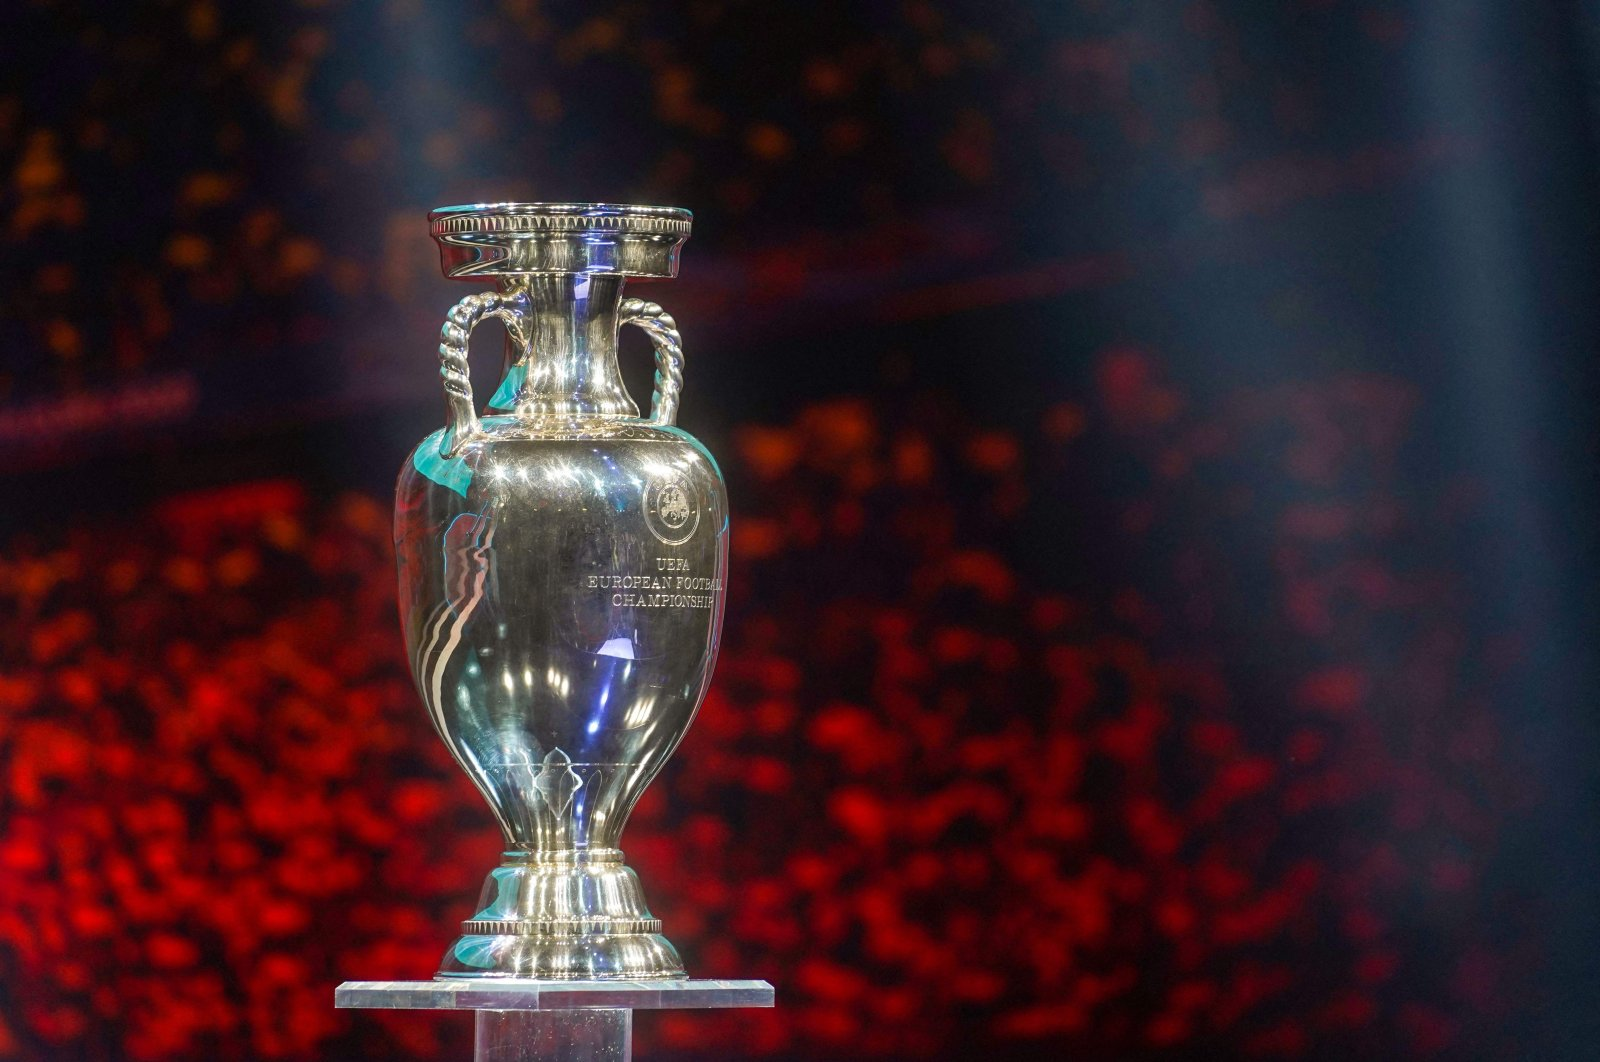 In this file photo taken on Nov. 30, 2019, the Euro Trophy is displayed on the stage during the UEFA Euro 2020 football competition final draw in Bucharest, Romania. (AFP Photo)